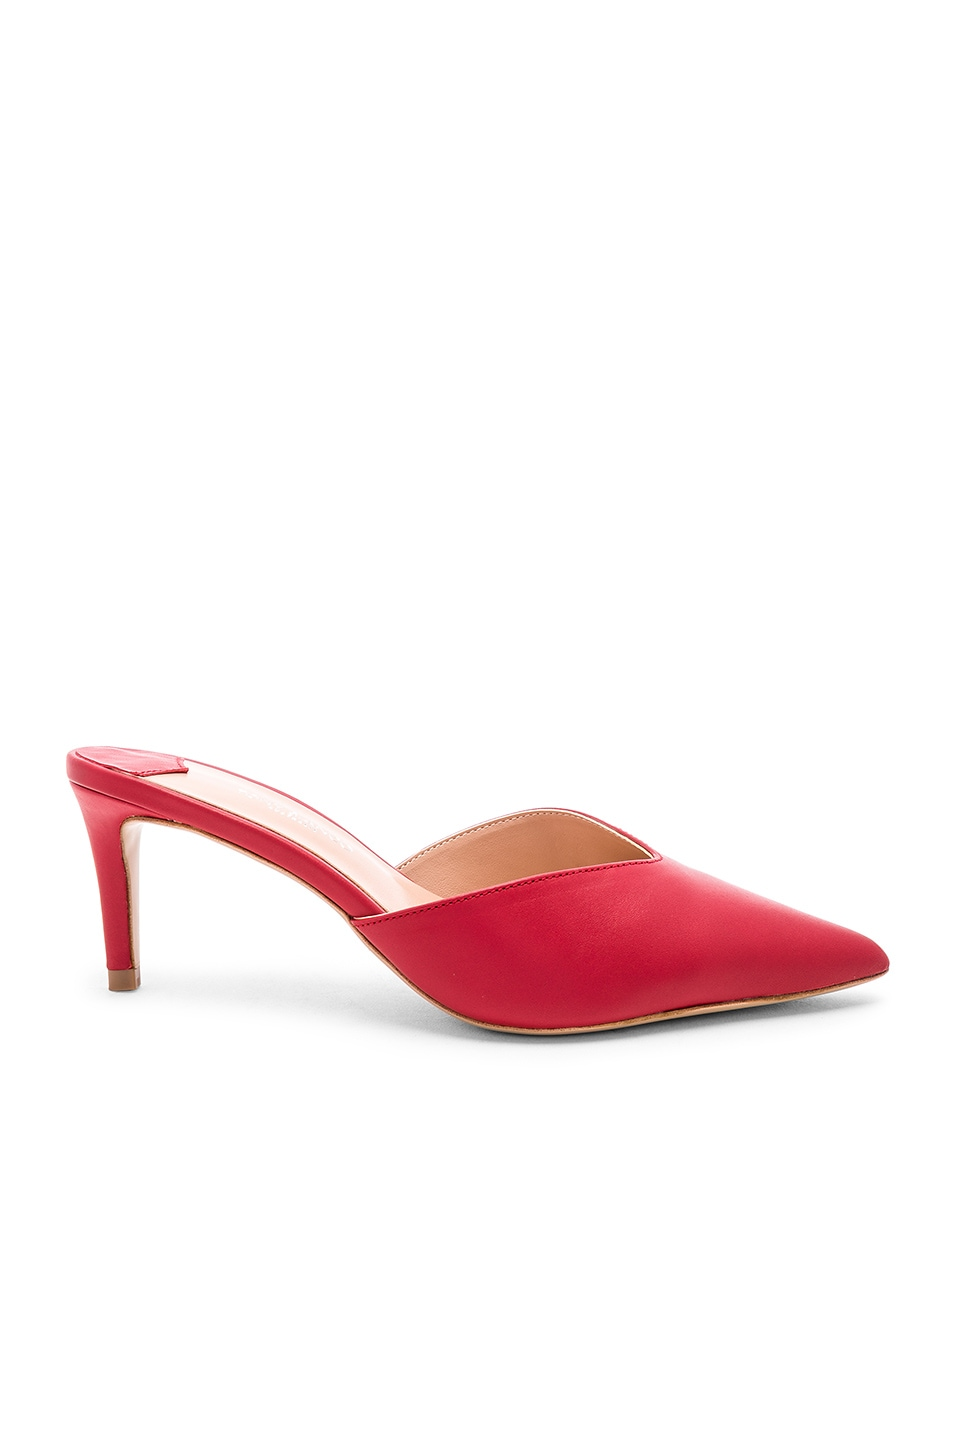 Tony Bianco Geva Mule in Red Denver